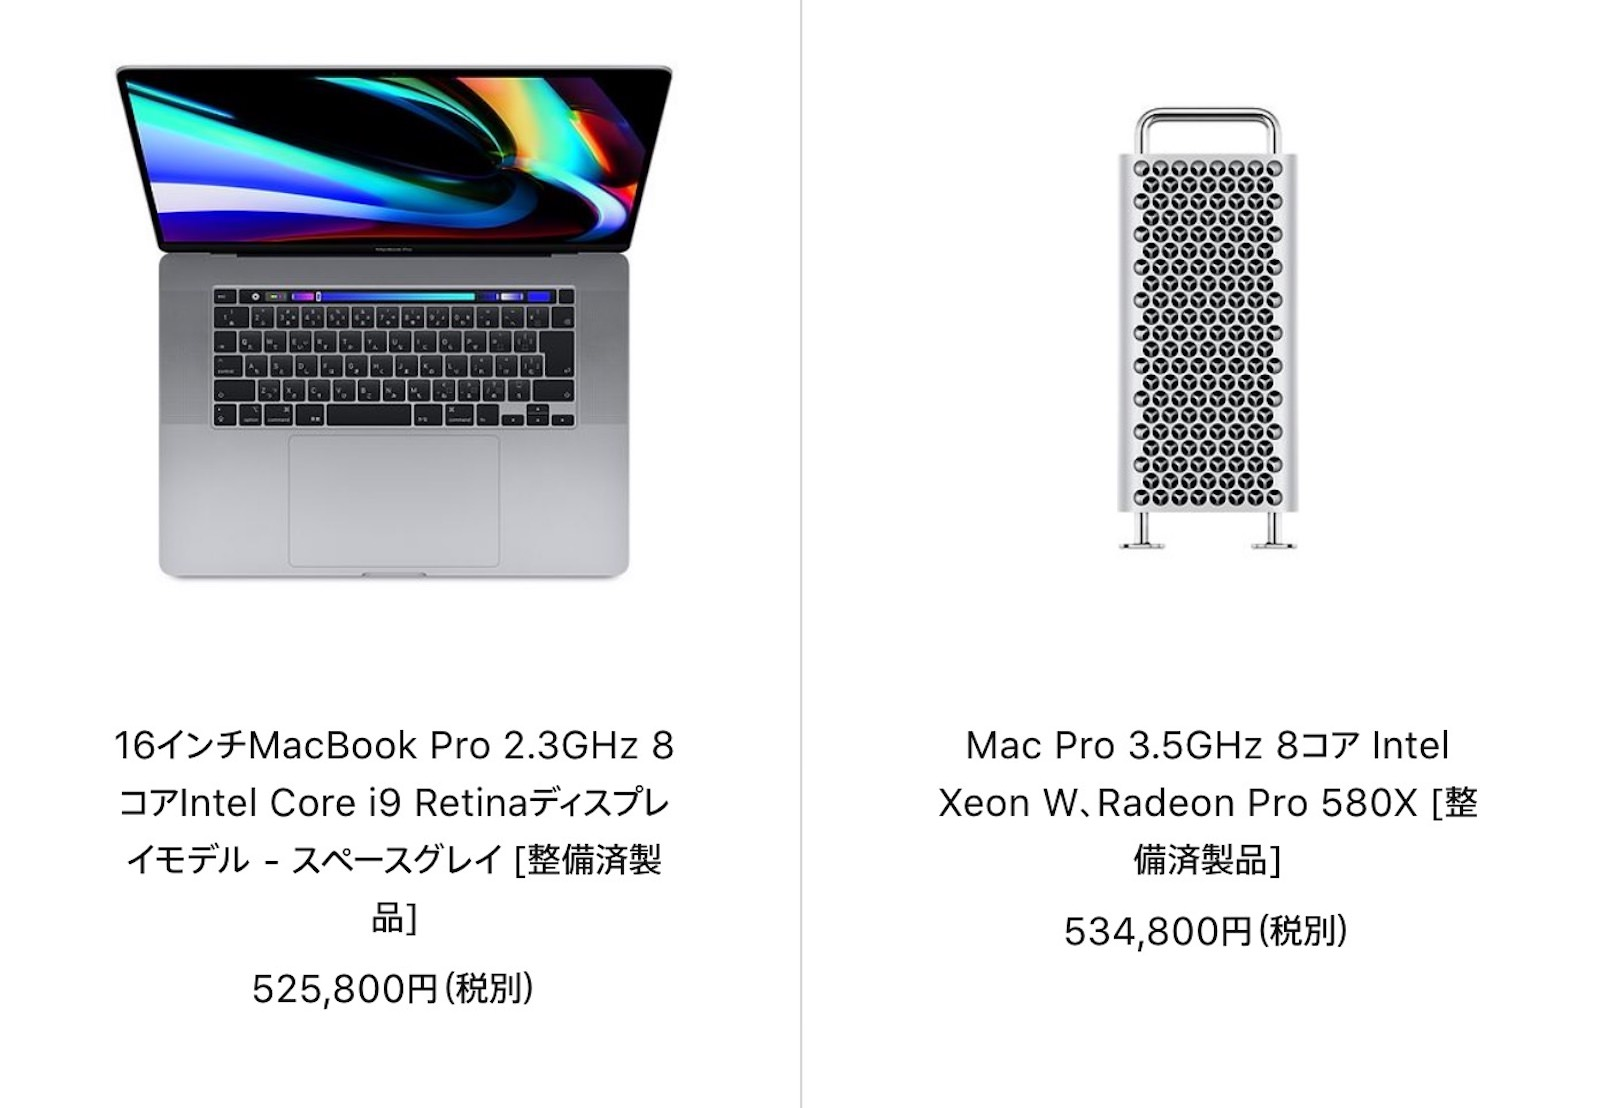 Macpro2019 and macbookpro16inch